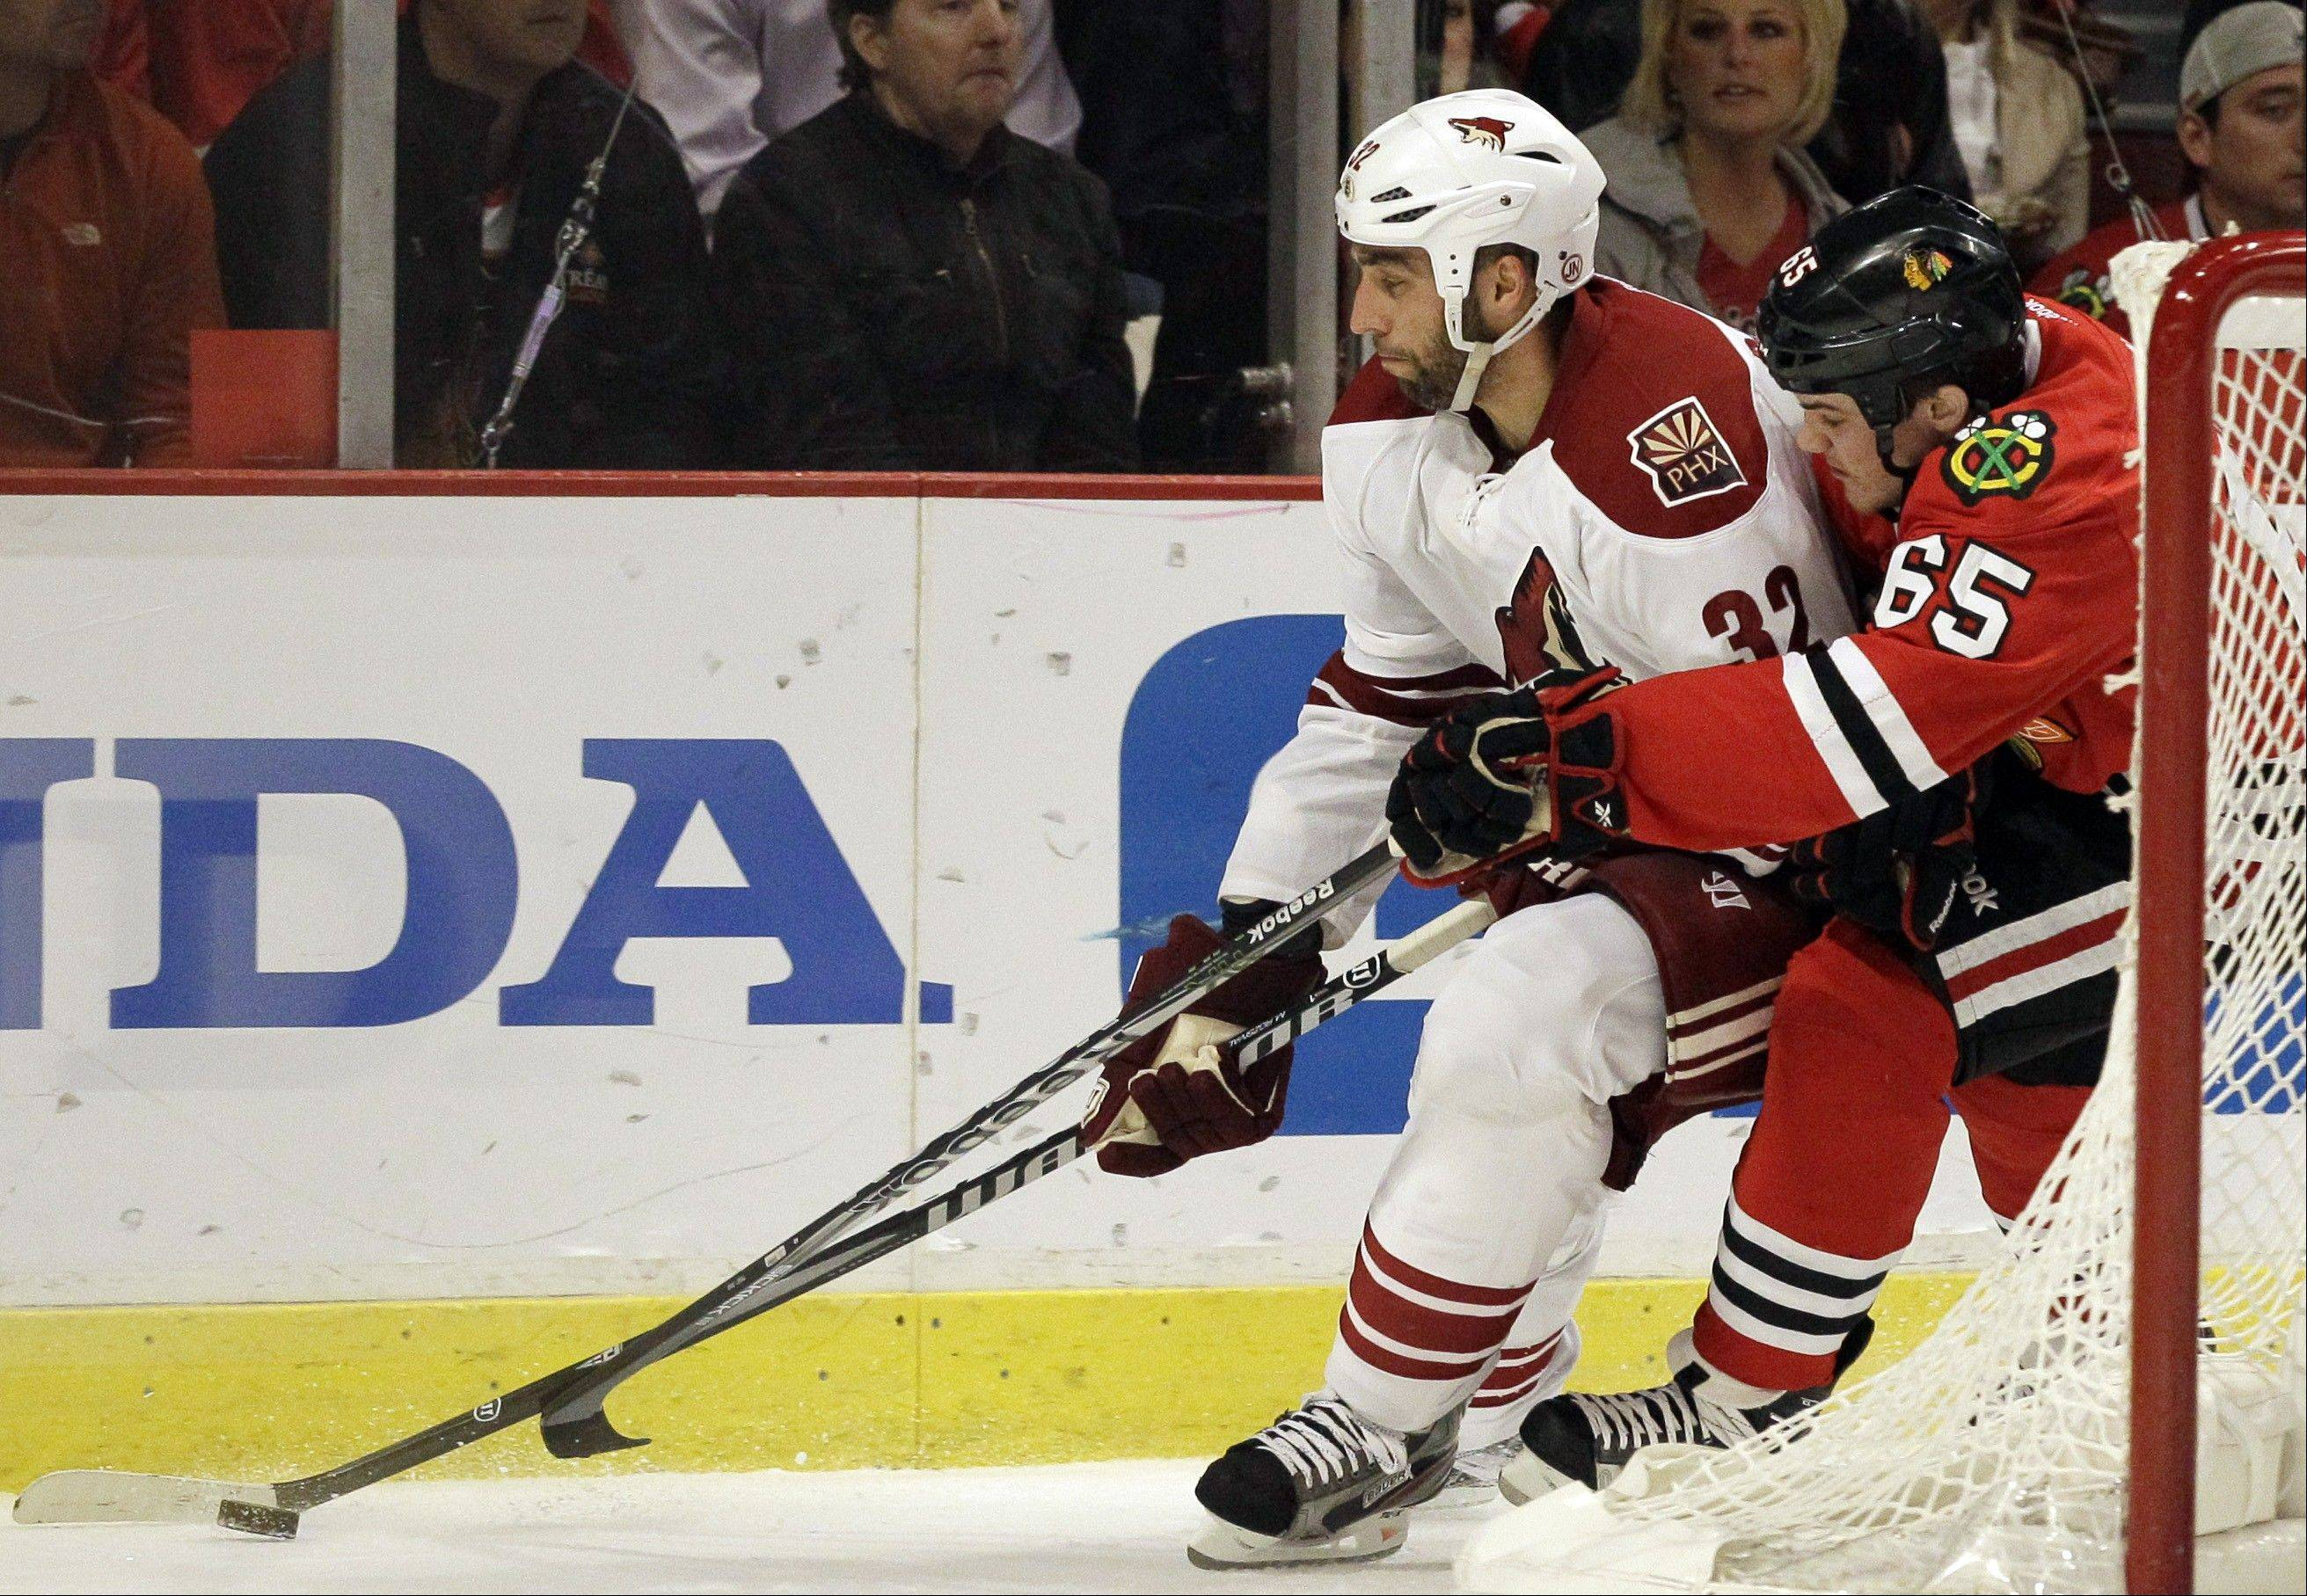 Former Phoenix Coyotes defenseman Michal Rozsival (32), here battling Andrew Shaw in the 2012 playoffs, has agreed to a one-year deal with the Blackhawks.